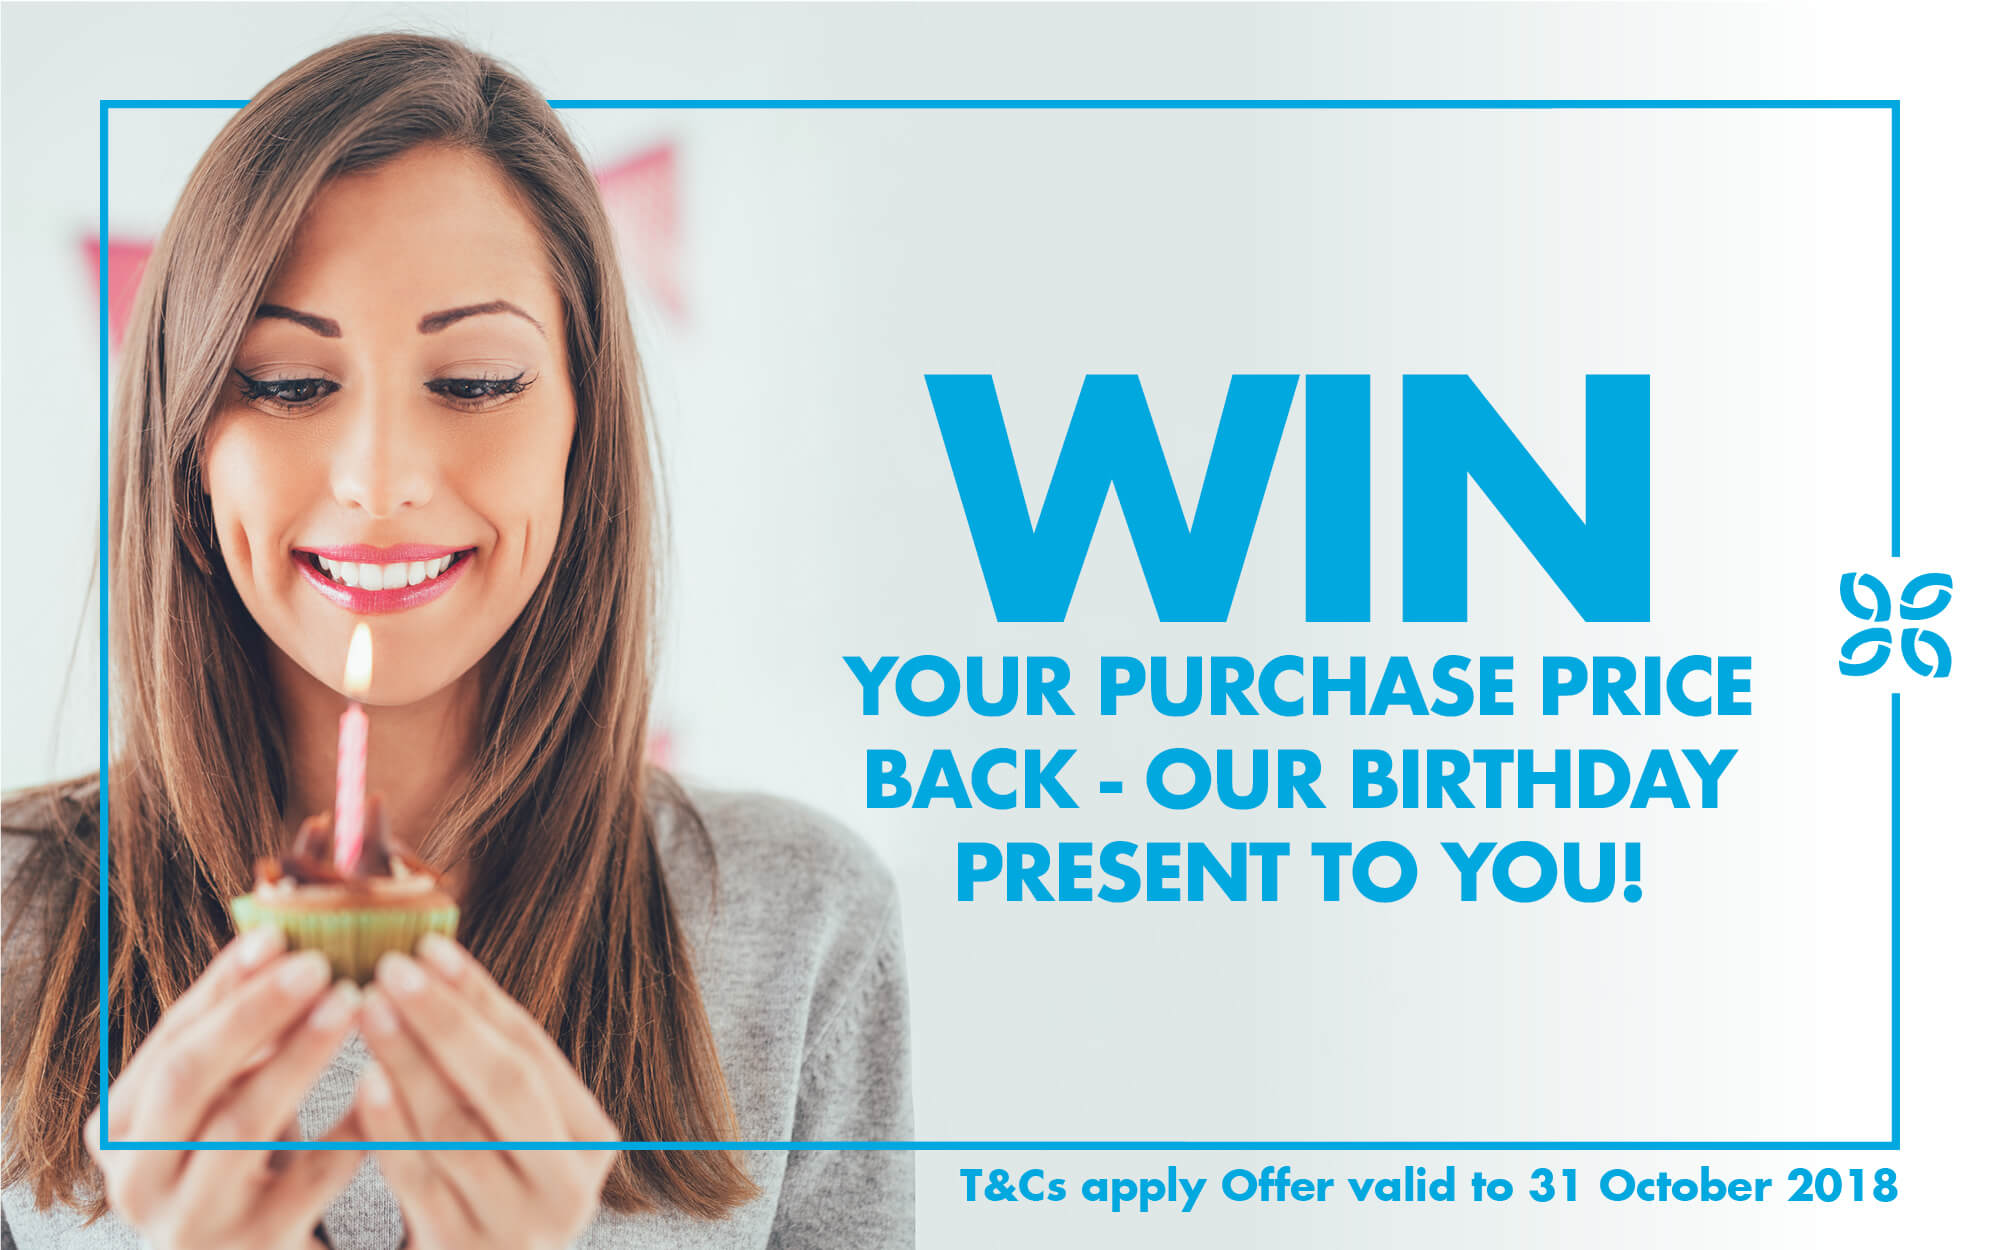 WIN YOUR PURCHASE BACK MOBILE